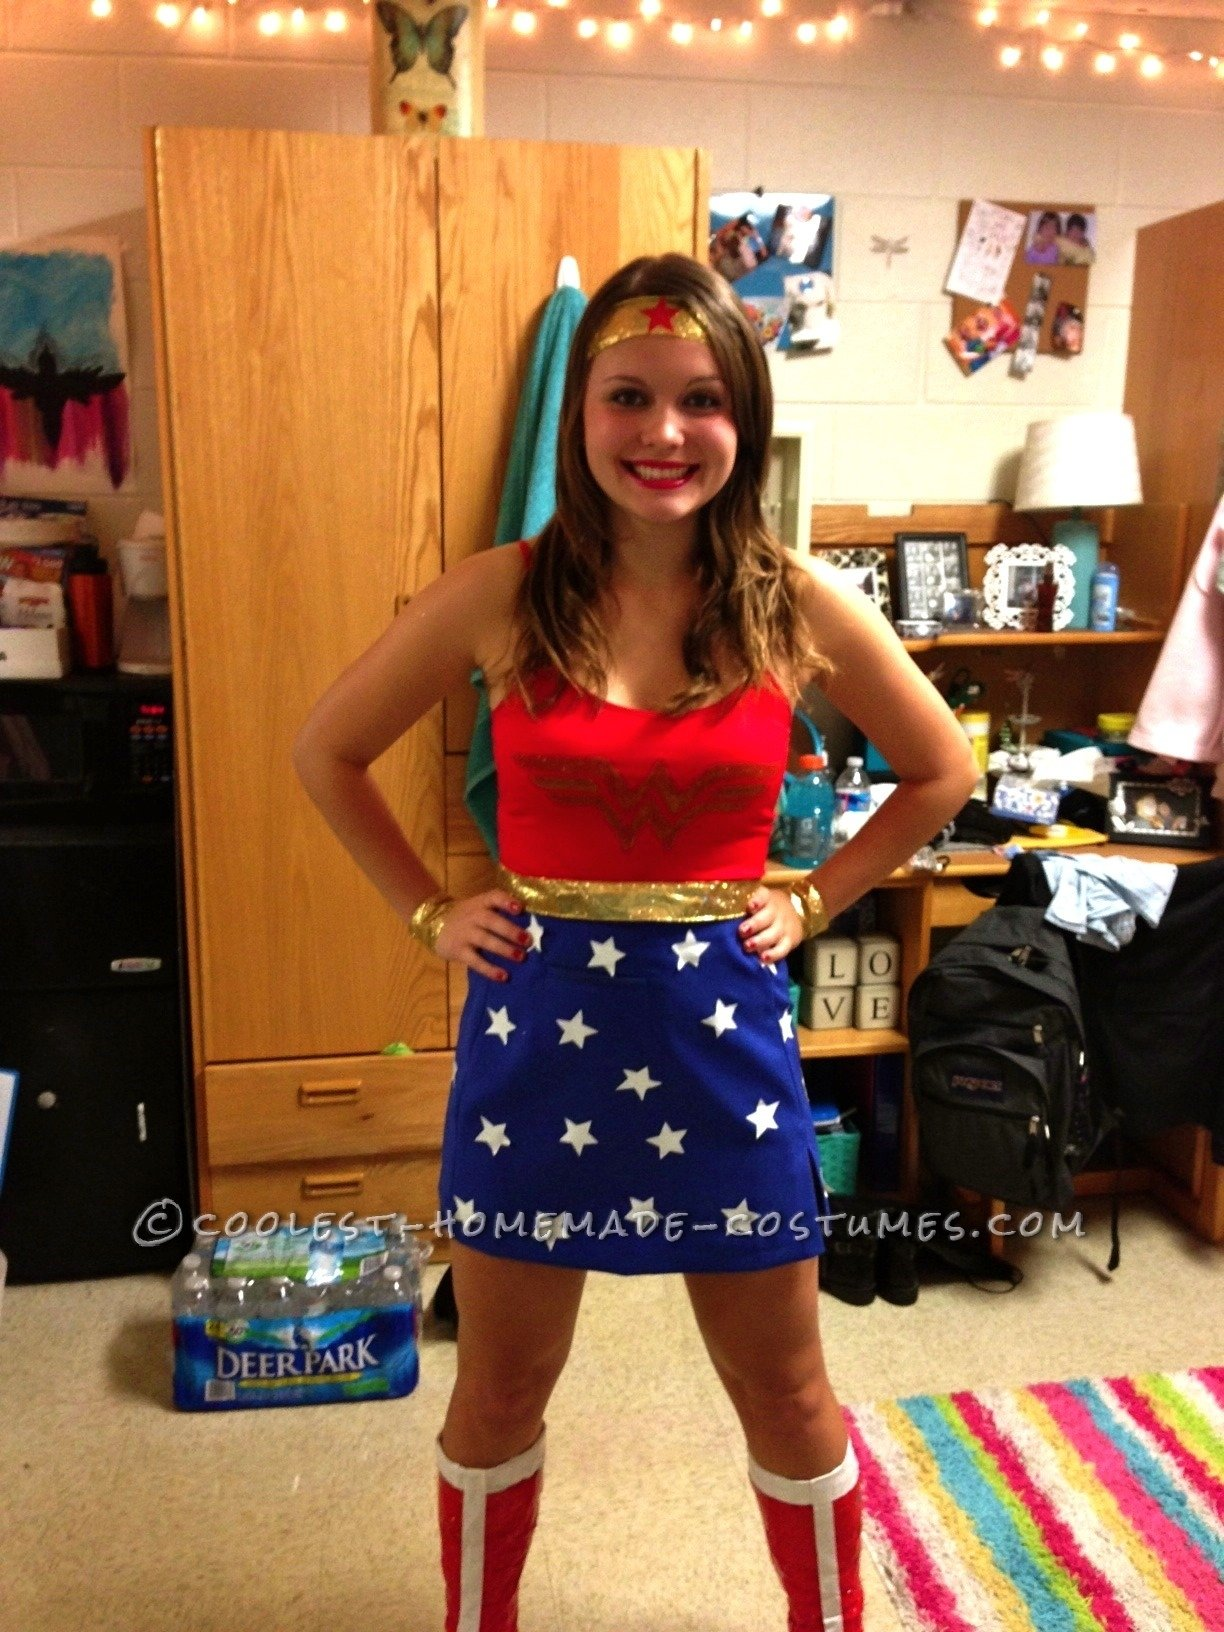 10 Fantastic Simple Costume Ideas For Women 50 fiercely fabulous homemade wonder woman costumes 2020